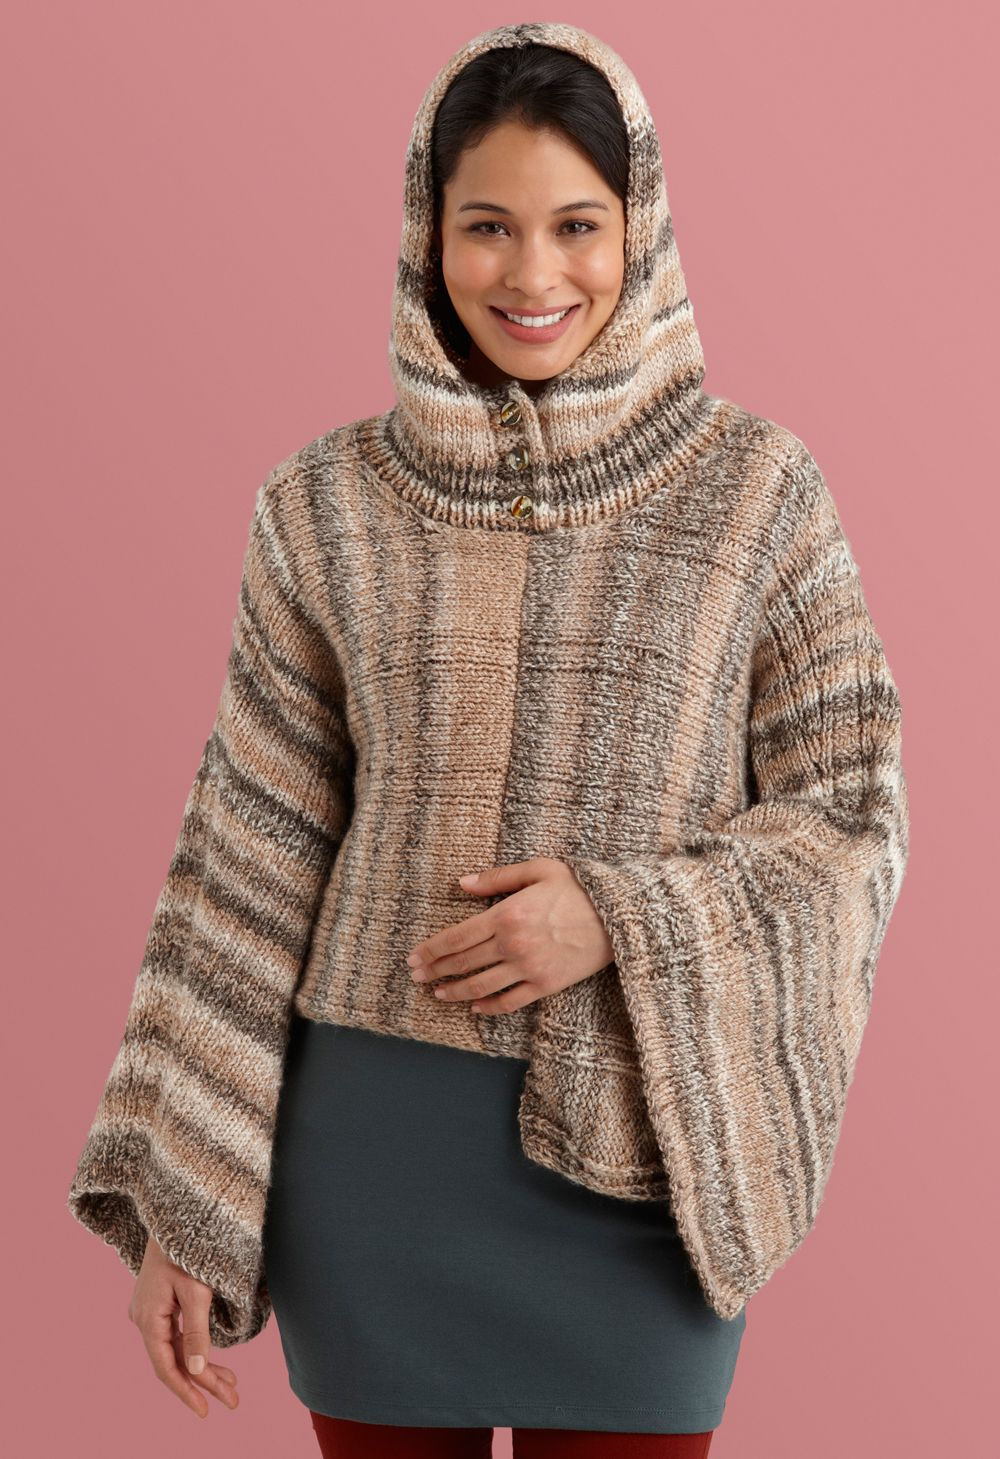 Free crochet patterns for ponchos with hoods google search free crochet patterns for ponchos with hoods google search bankloansurffo Choice Image